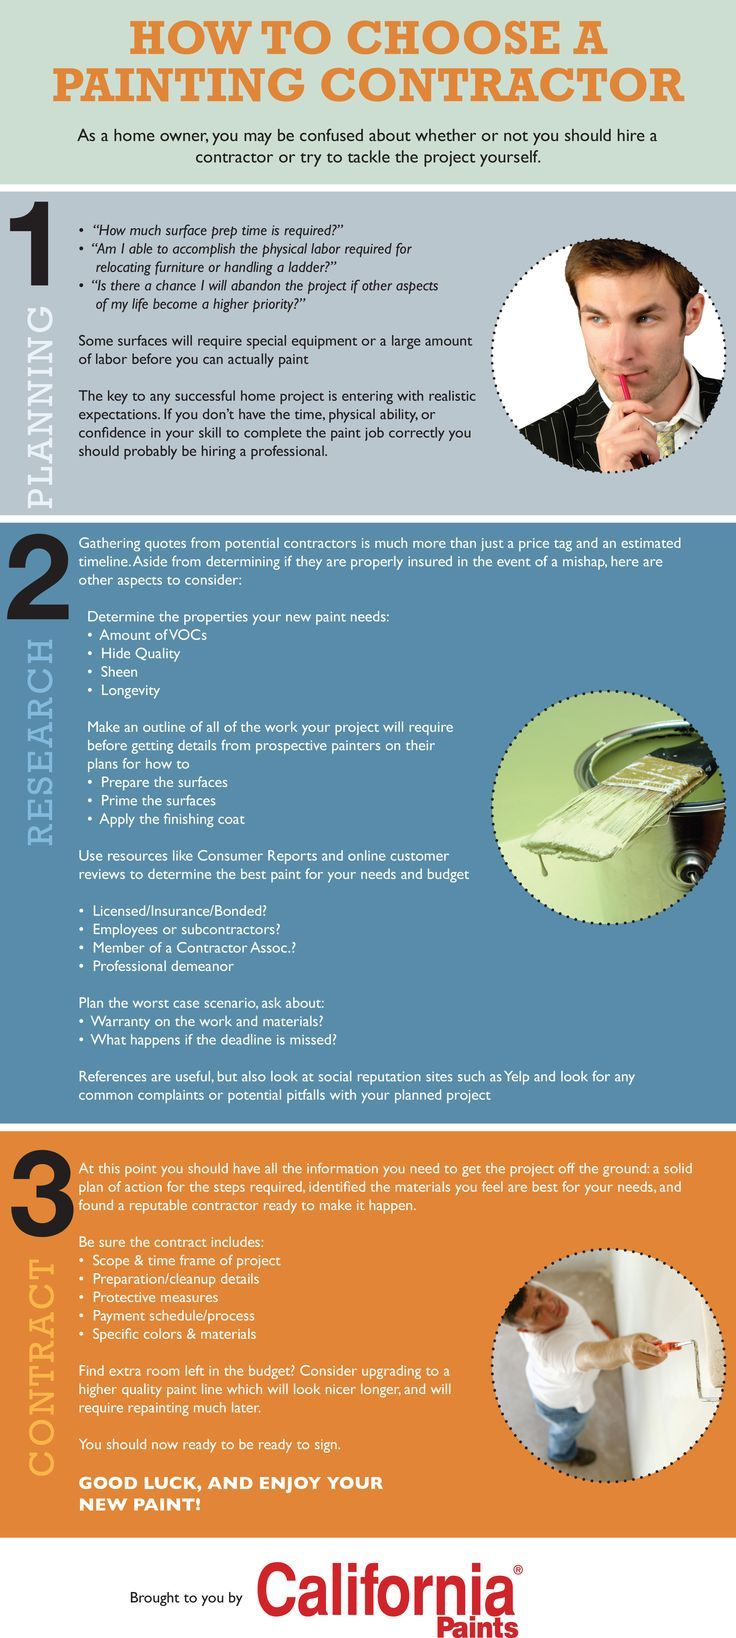 How to Hire a Painting Contractor [Infographic] Painting